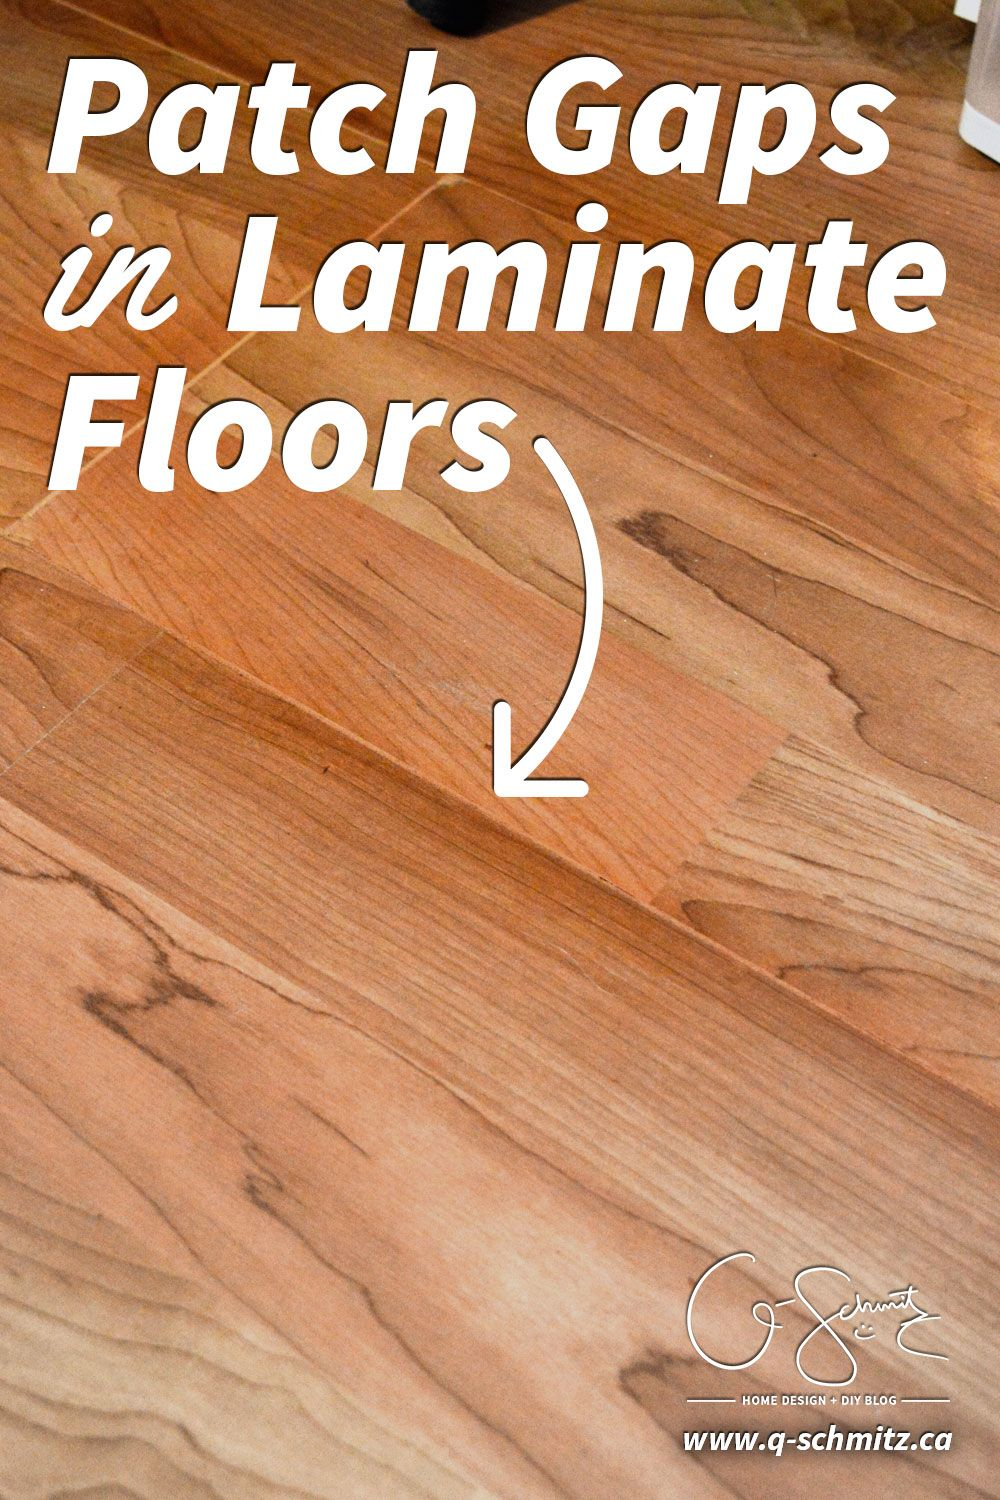 Patch gaps in laminate floors for the home pinterest patches how to patch gaps in laminate floors when you have removed a wall or want to solutioingenieria Image collections